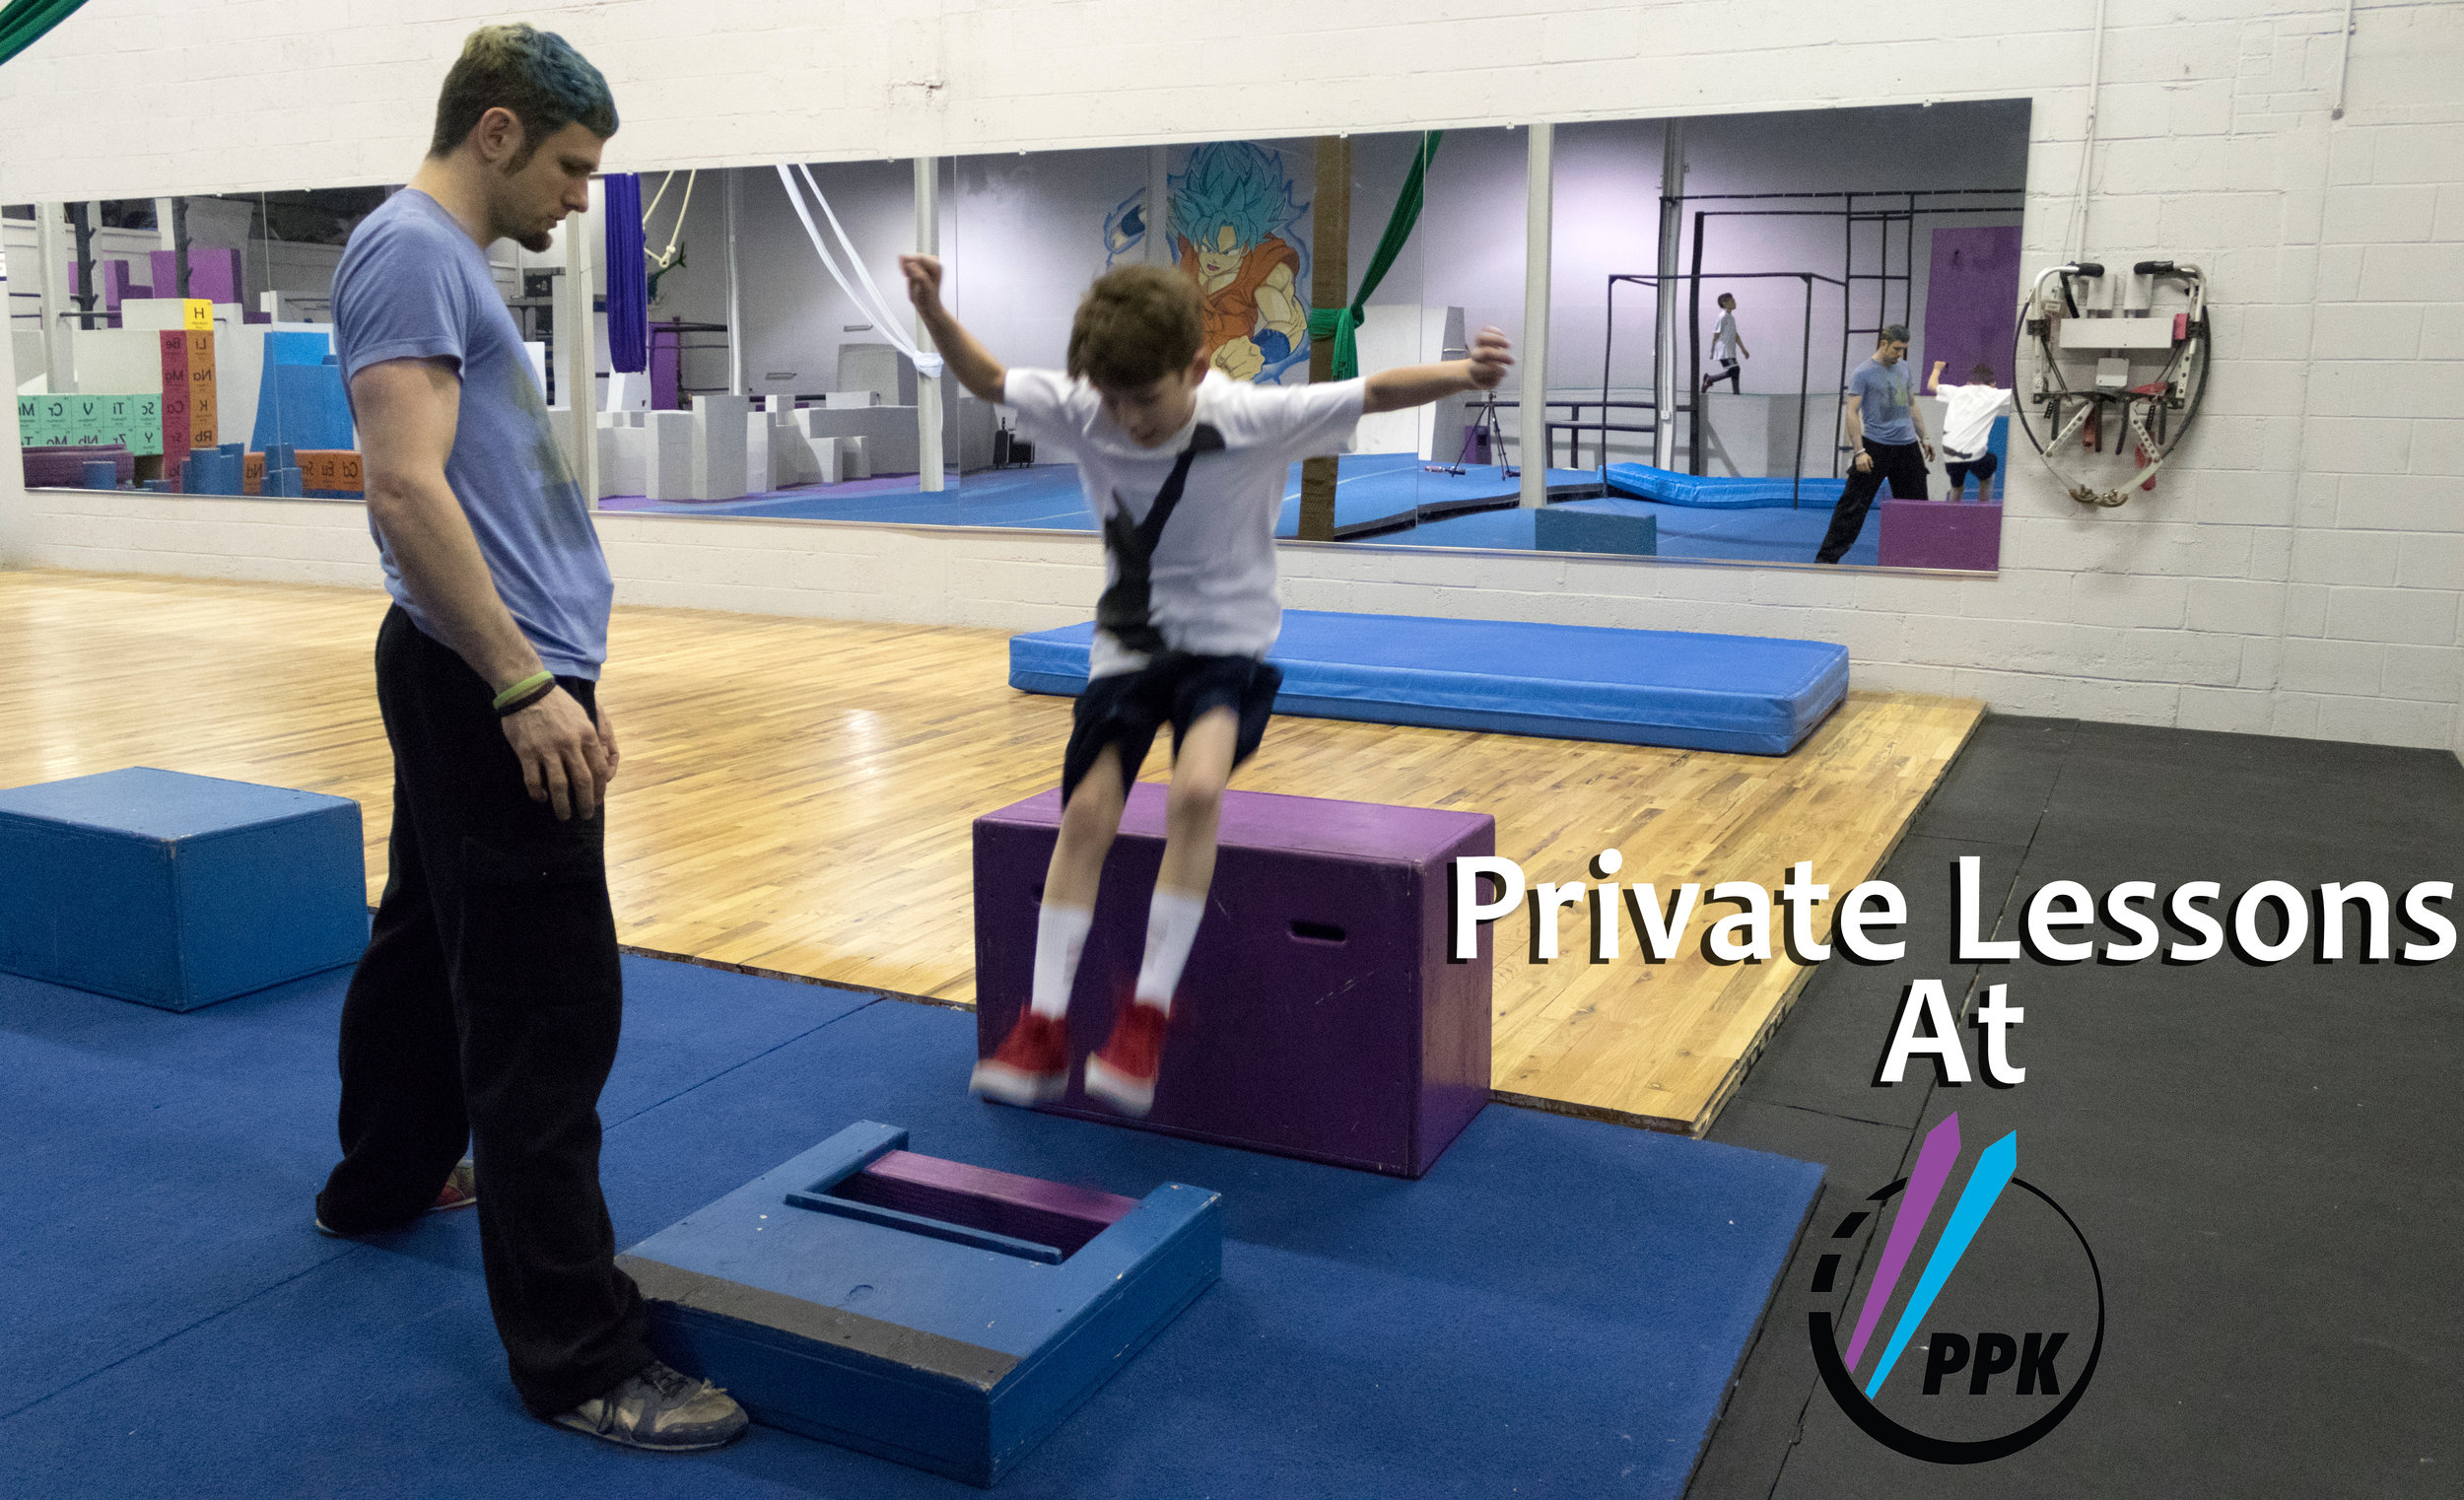 Private Lessons - Need some more one on one time after normal classes are over? Need some help perfecting the technique of a particular move? Maybe just want to learn a specific set of skills for an upcoming event? Get some 1 on 1 time with our professional instructors! Our private lessons are made to give our students the unique critiques and attention particular to each individual to help them excel in their training.Have a skill you wanna learn that we don't have on our site? Give us a call, or shoot us an email and ask if we can teach that discipline! Odds are pretty good we have a coach that can handle nearly any movement discipline! Some examples: Tumbling, Tricking, Juggling, and many others!